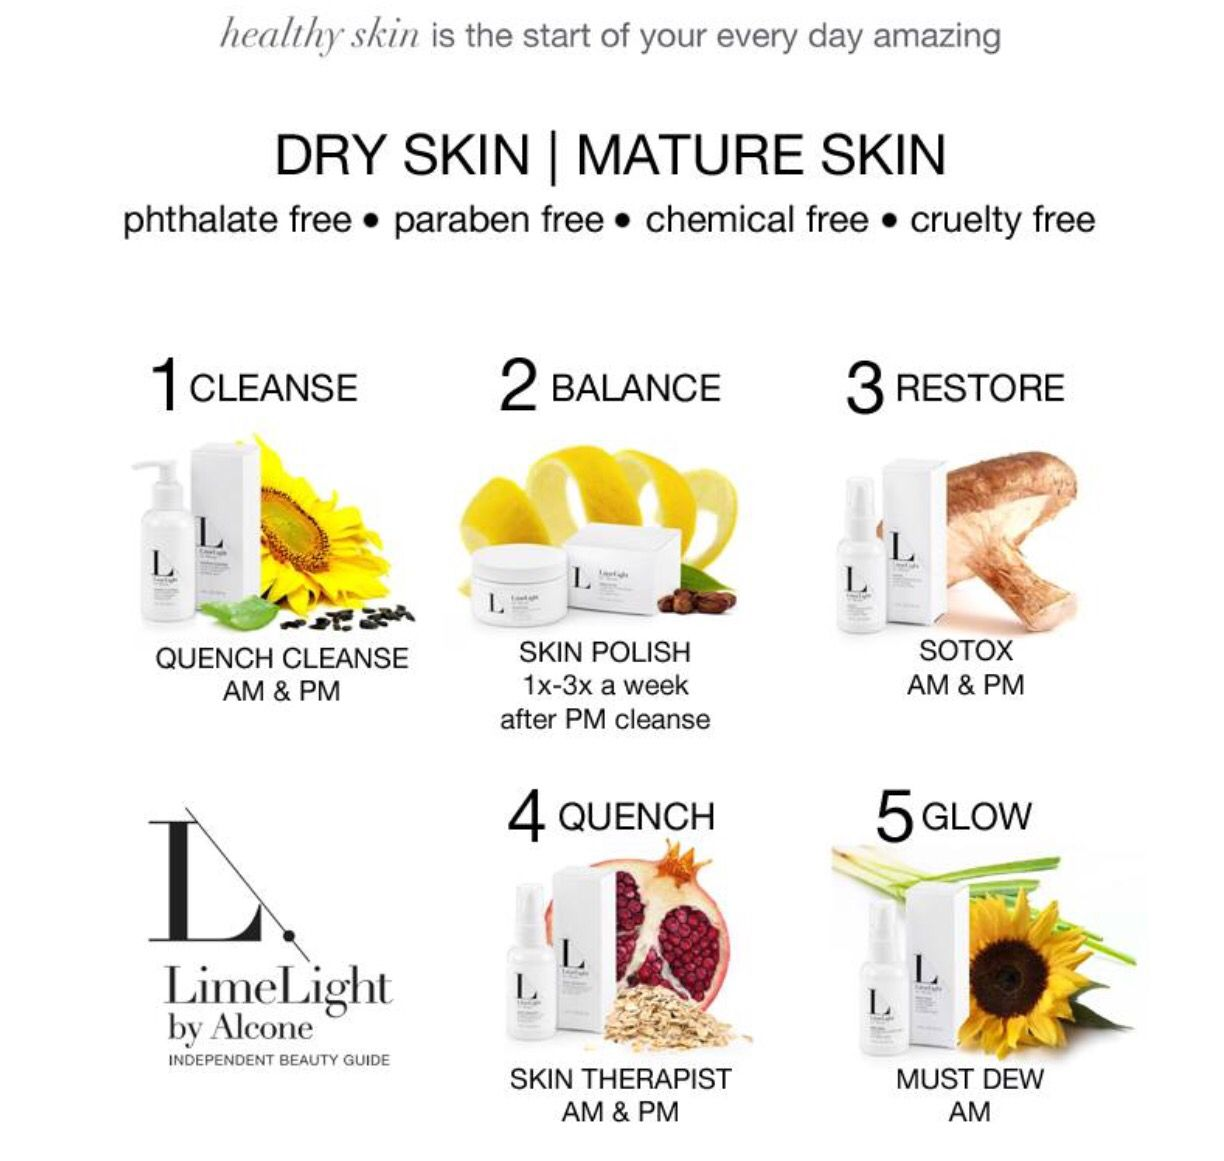 Limelight By Alcone Anti Aging Skin Products Cruelty Free Skin Care Dry Skin Care Routine